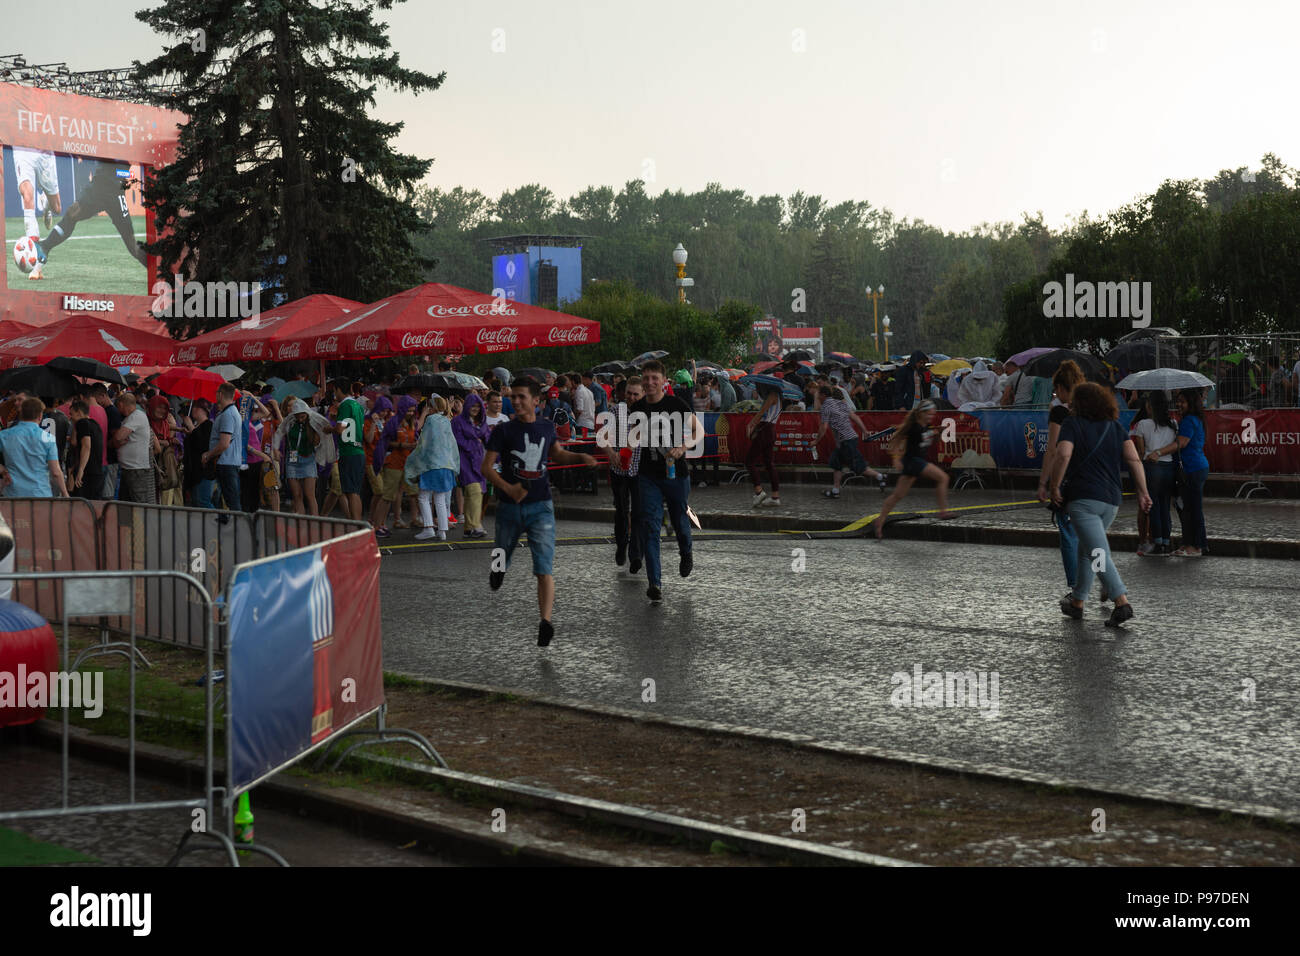 Moscow, Russia. 15th July, 2018. FIFA World Cup France-Croatia final. Fan festival area on Sparrow Hills by the Moscow State University. Area's capacity of 25000 people was exceeded manifold. There is barely room to move. Thunderstorm weather. Finally rain starts. But it cannot suppress the enthusiasm and passion of football fans. Credit: Alex's Pictures/Alamy Live News Stock Photo